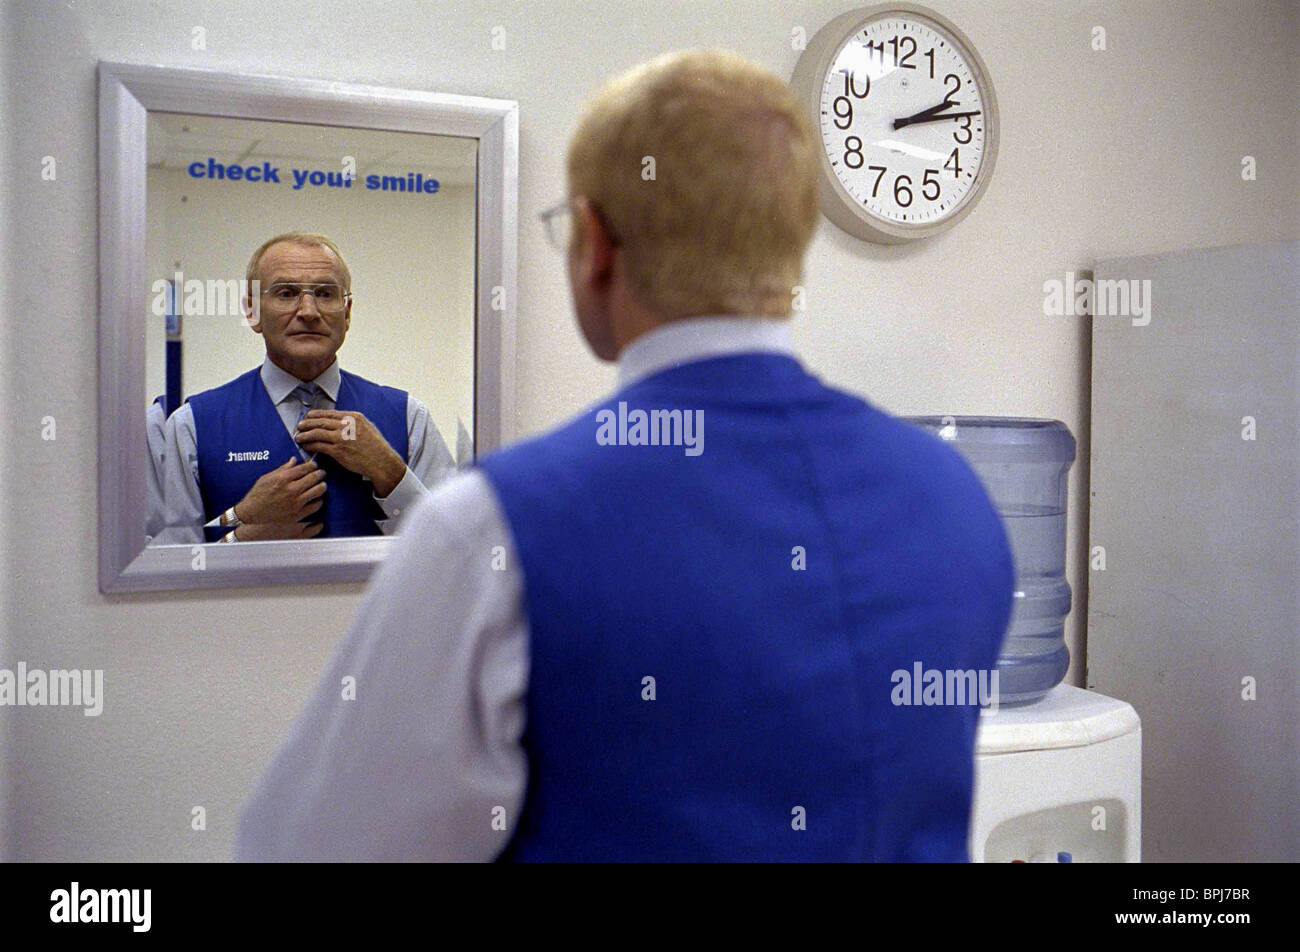 ROBIN WILLIAMS ONE HOUR PHOTO (2002) - Stock Image